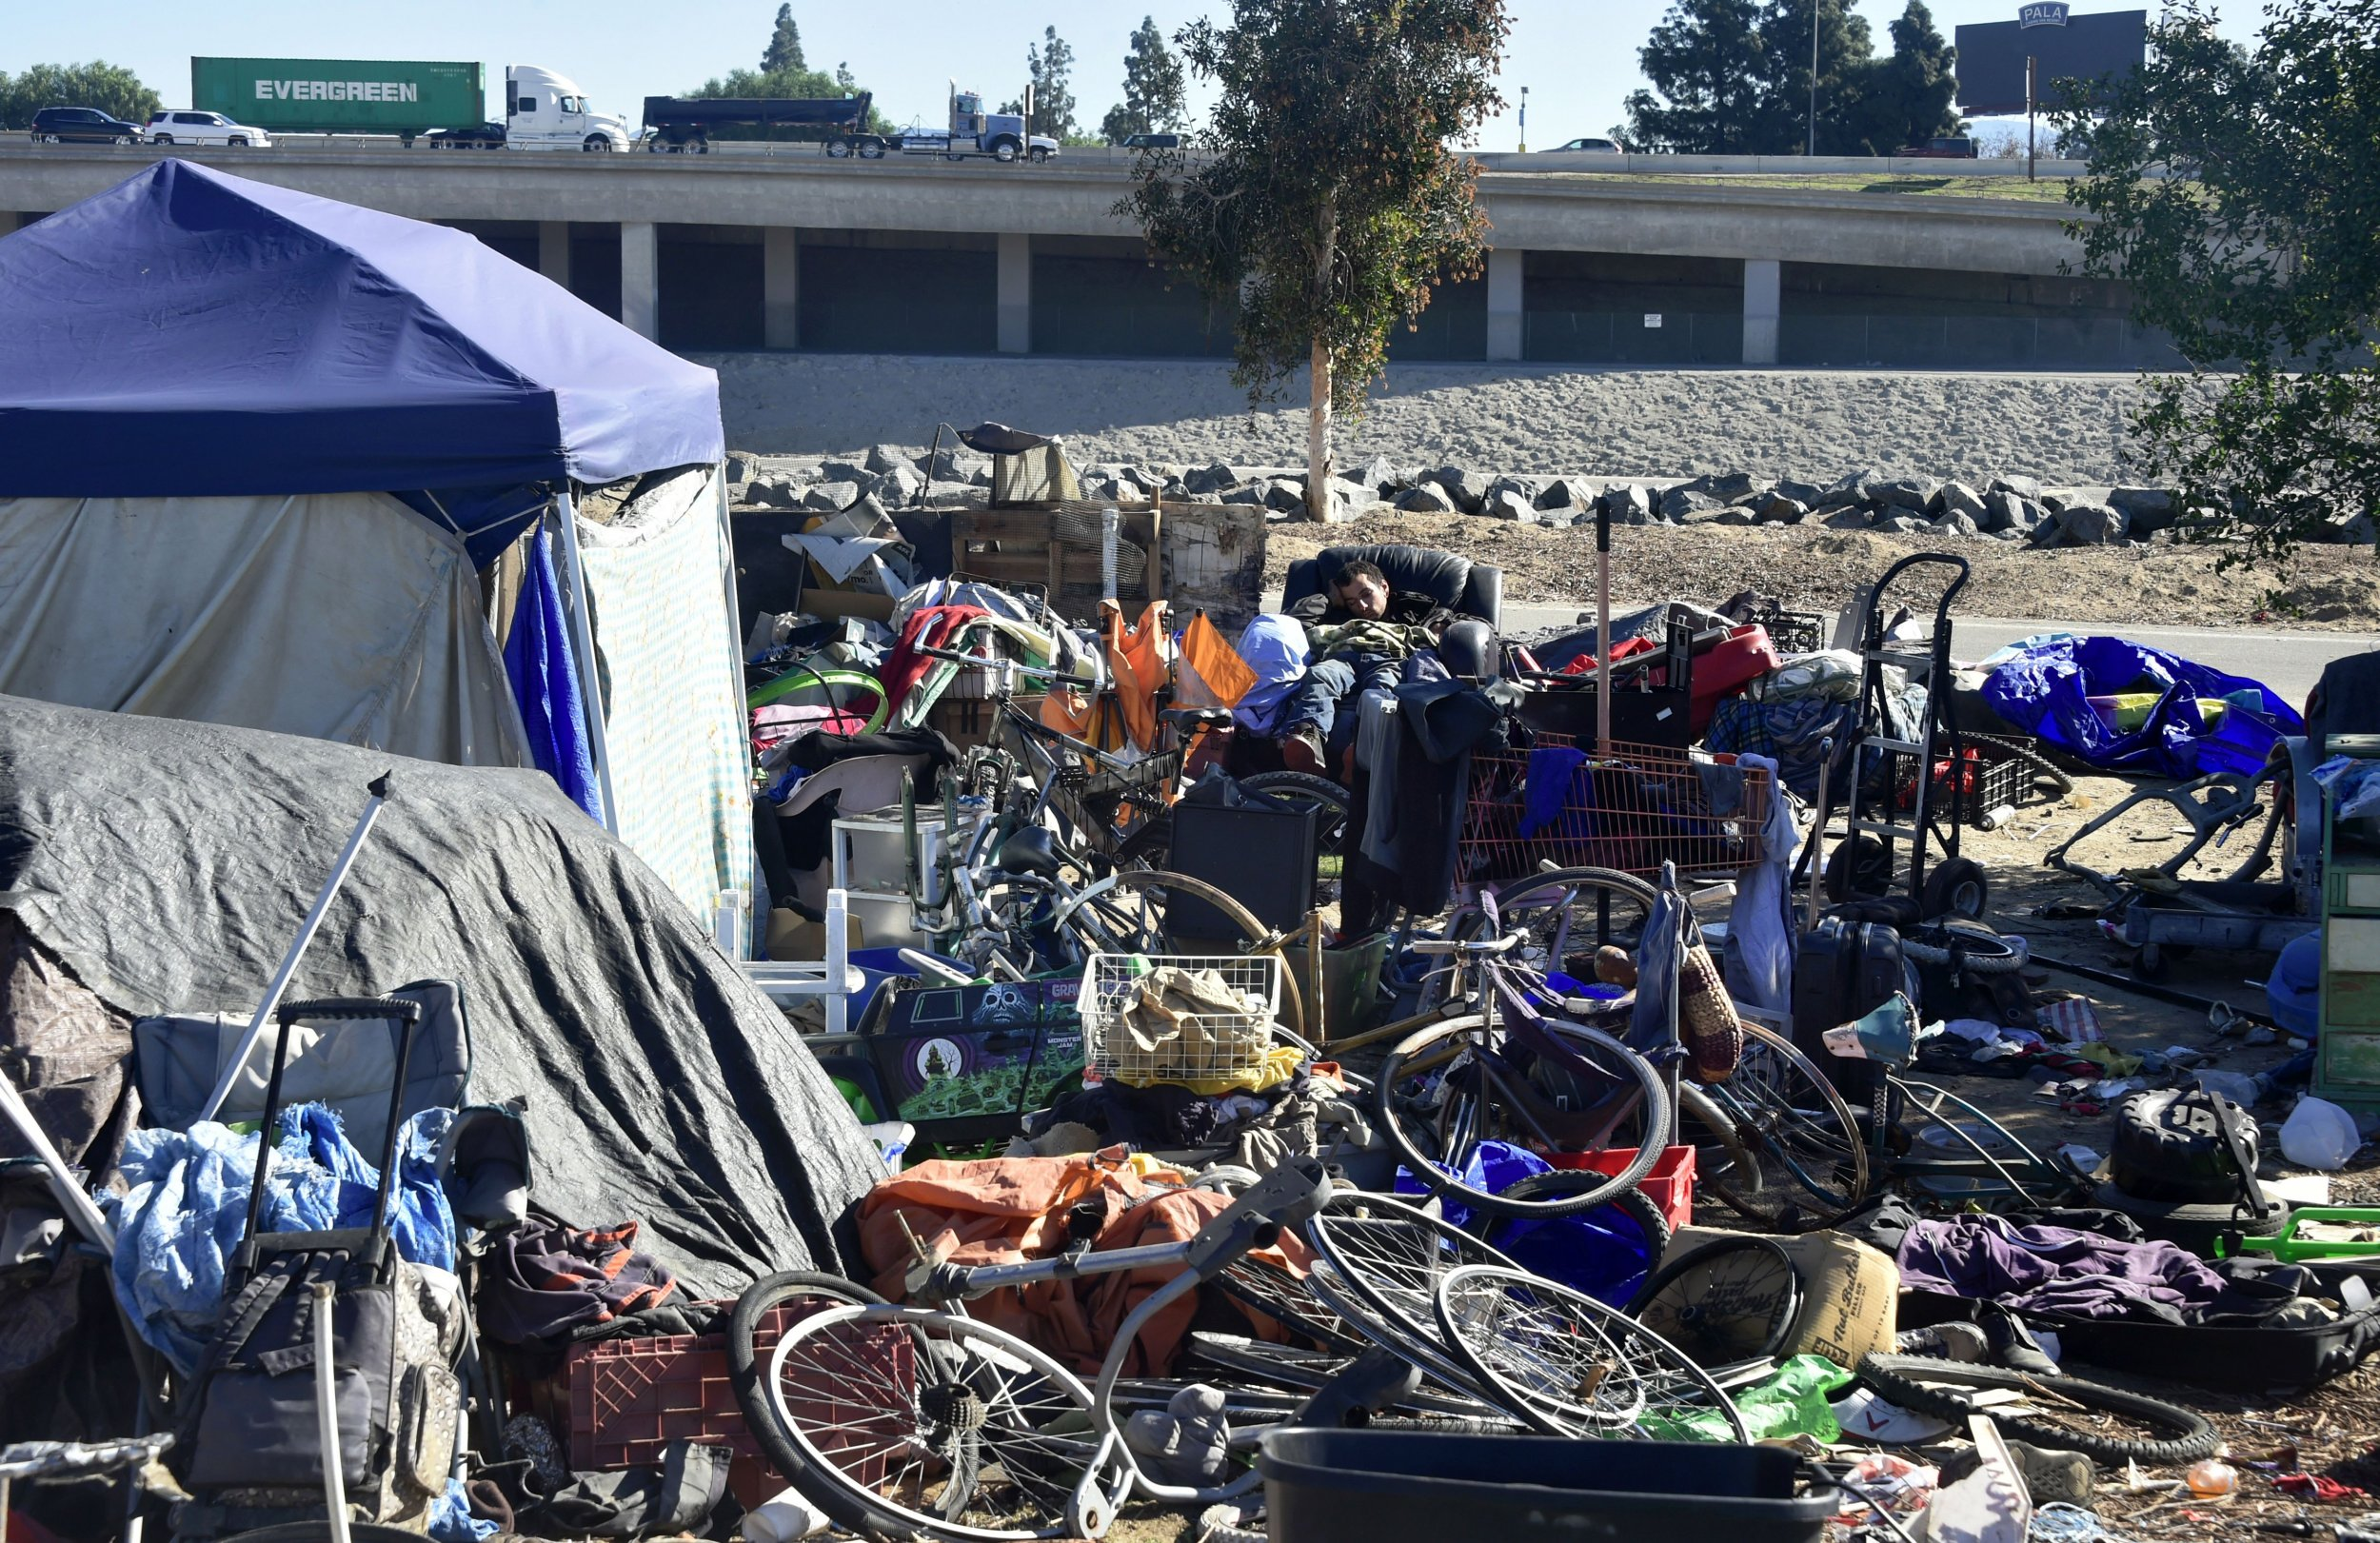 Image result for images of california tent cities